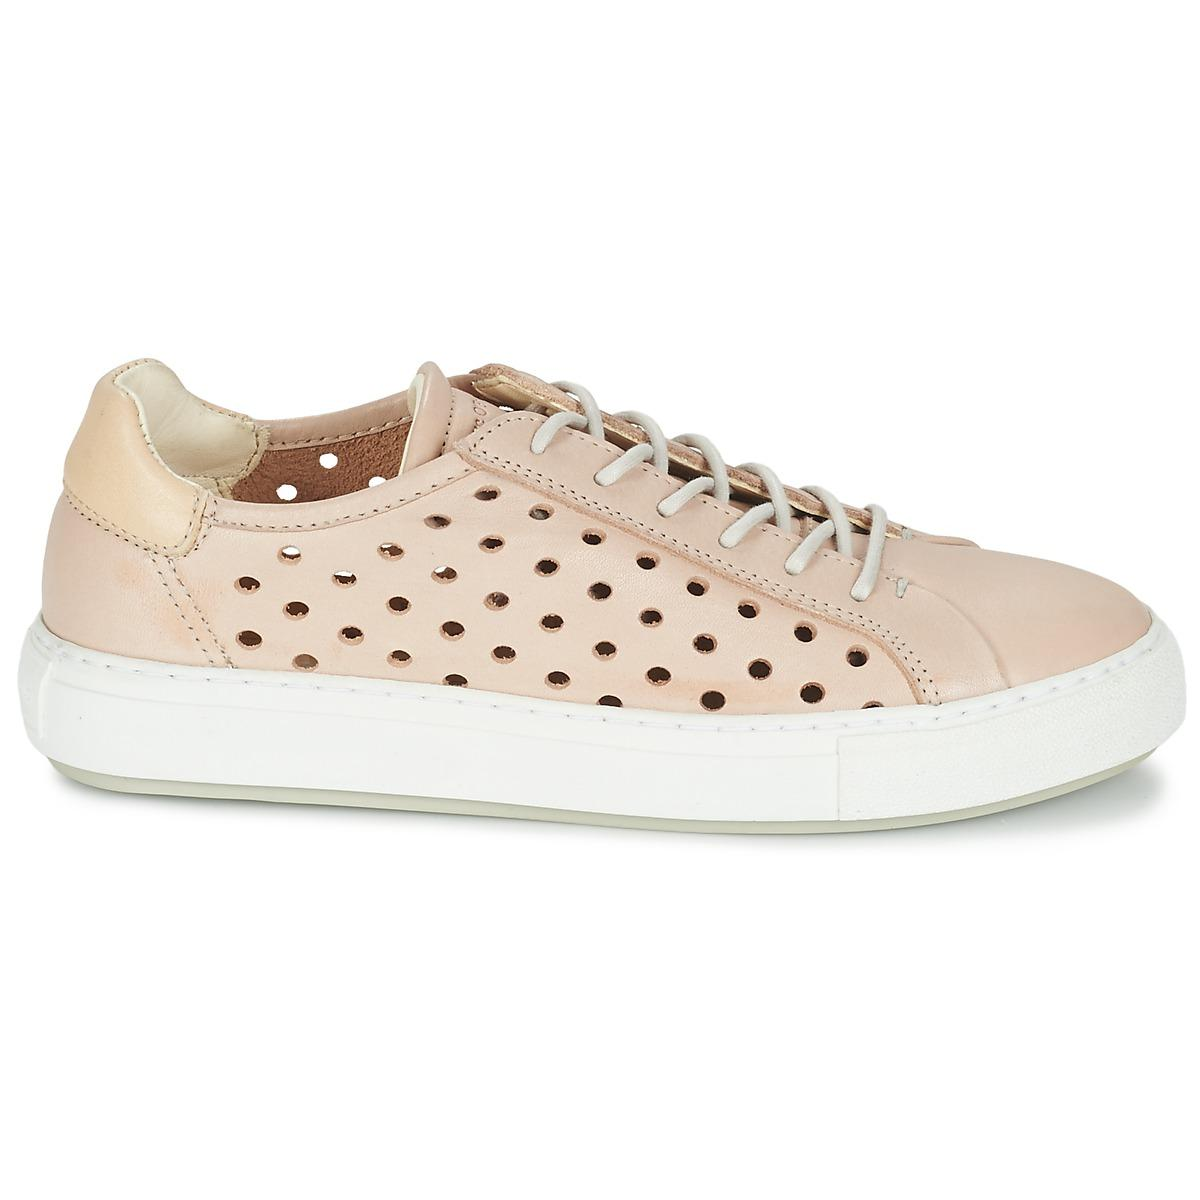 Marc O'polo Leather Odettar Shoes (trainers) in Pink